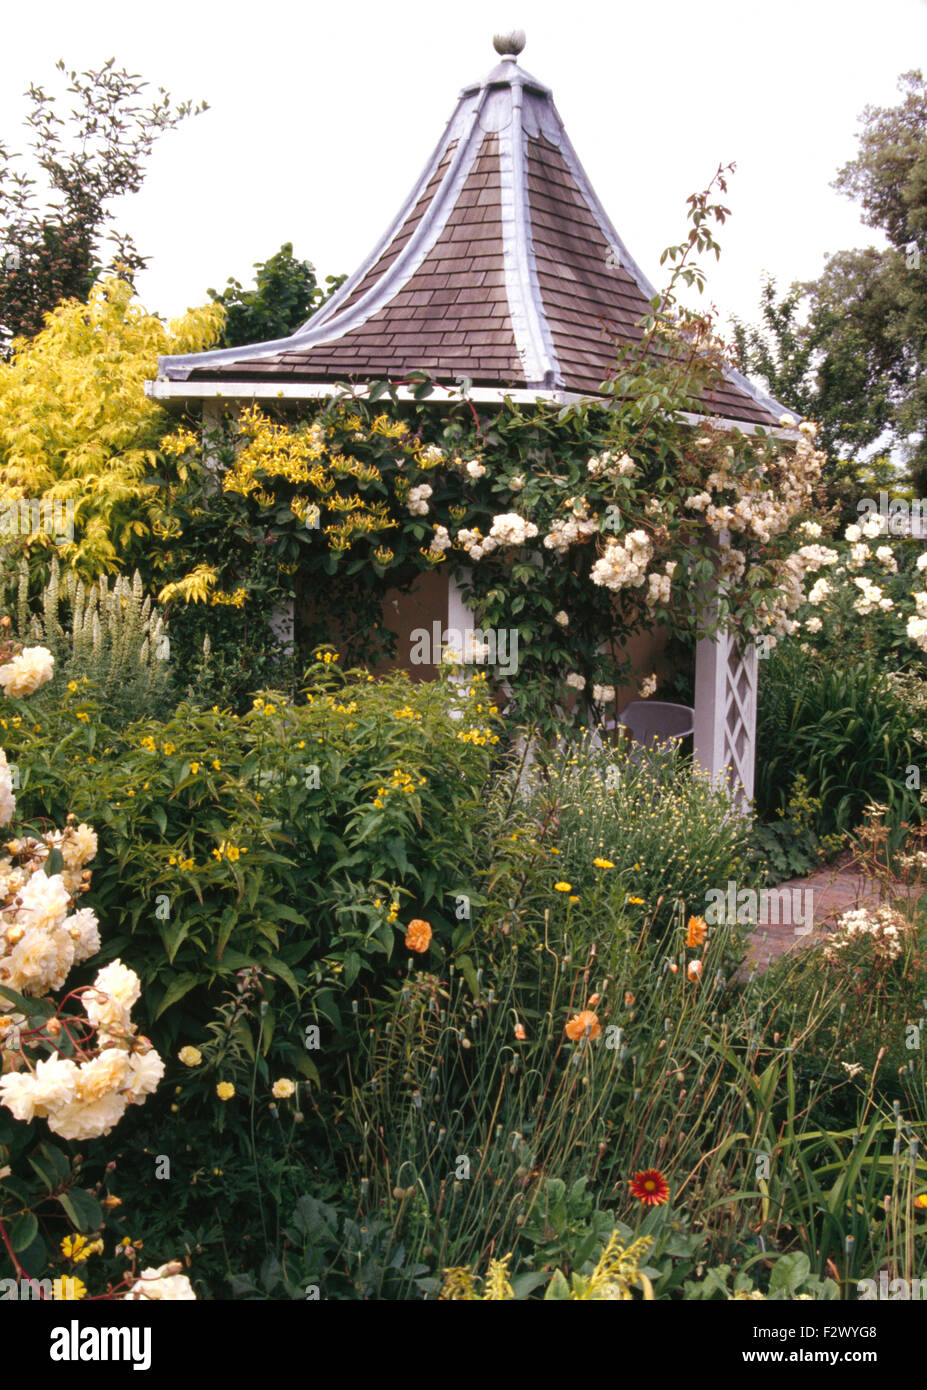 White roses on hexagonal gazebo with tiled roof in large country garden in summer - Stock Image